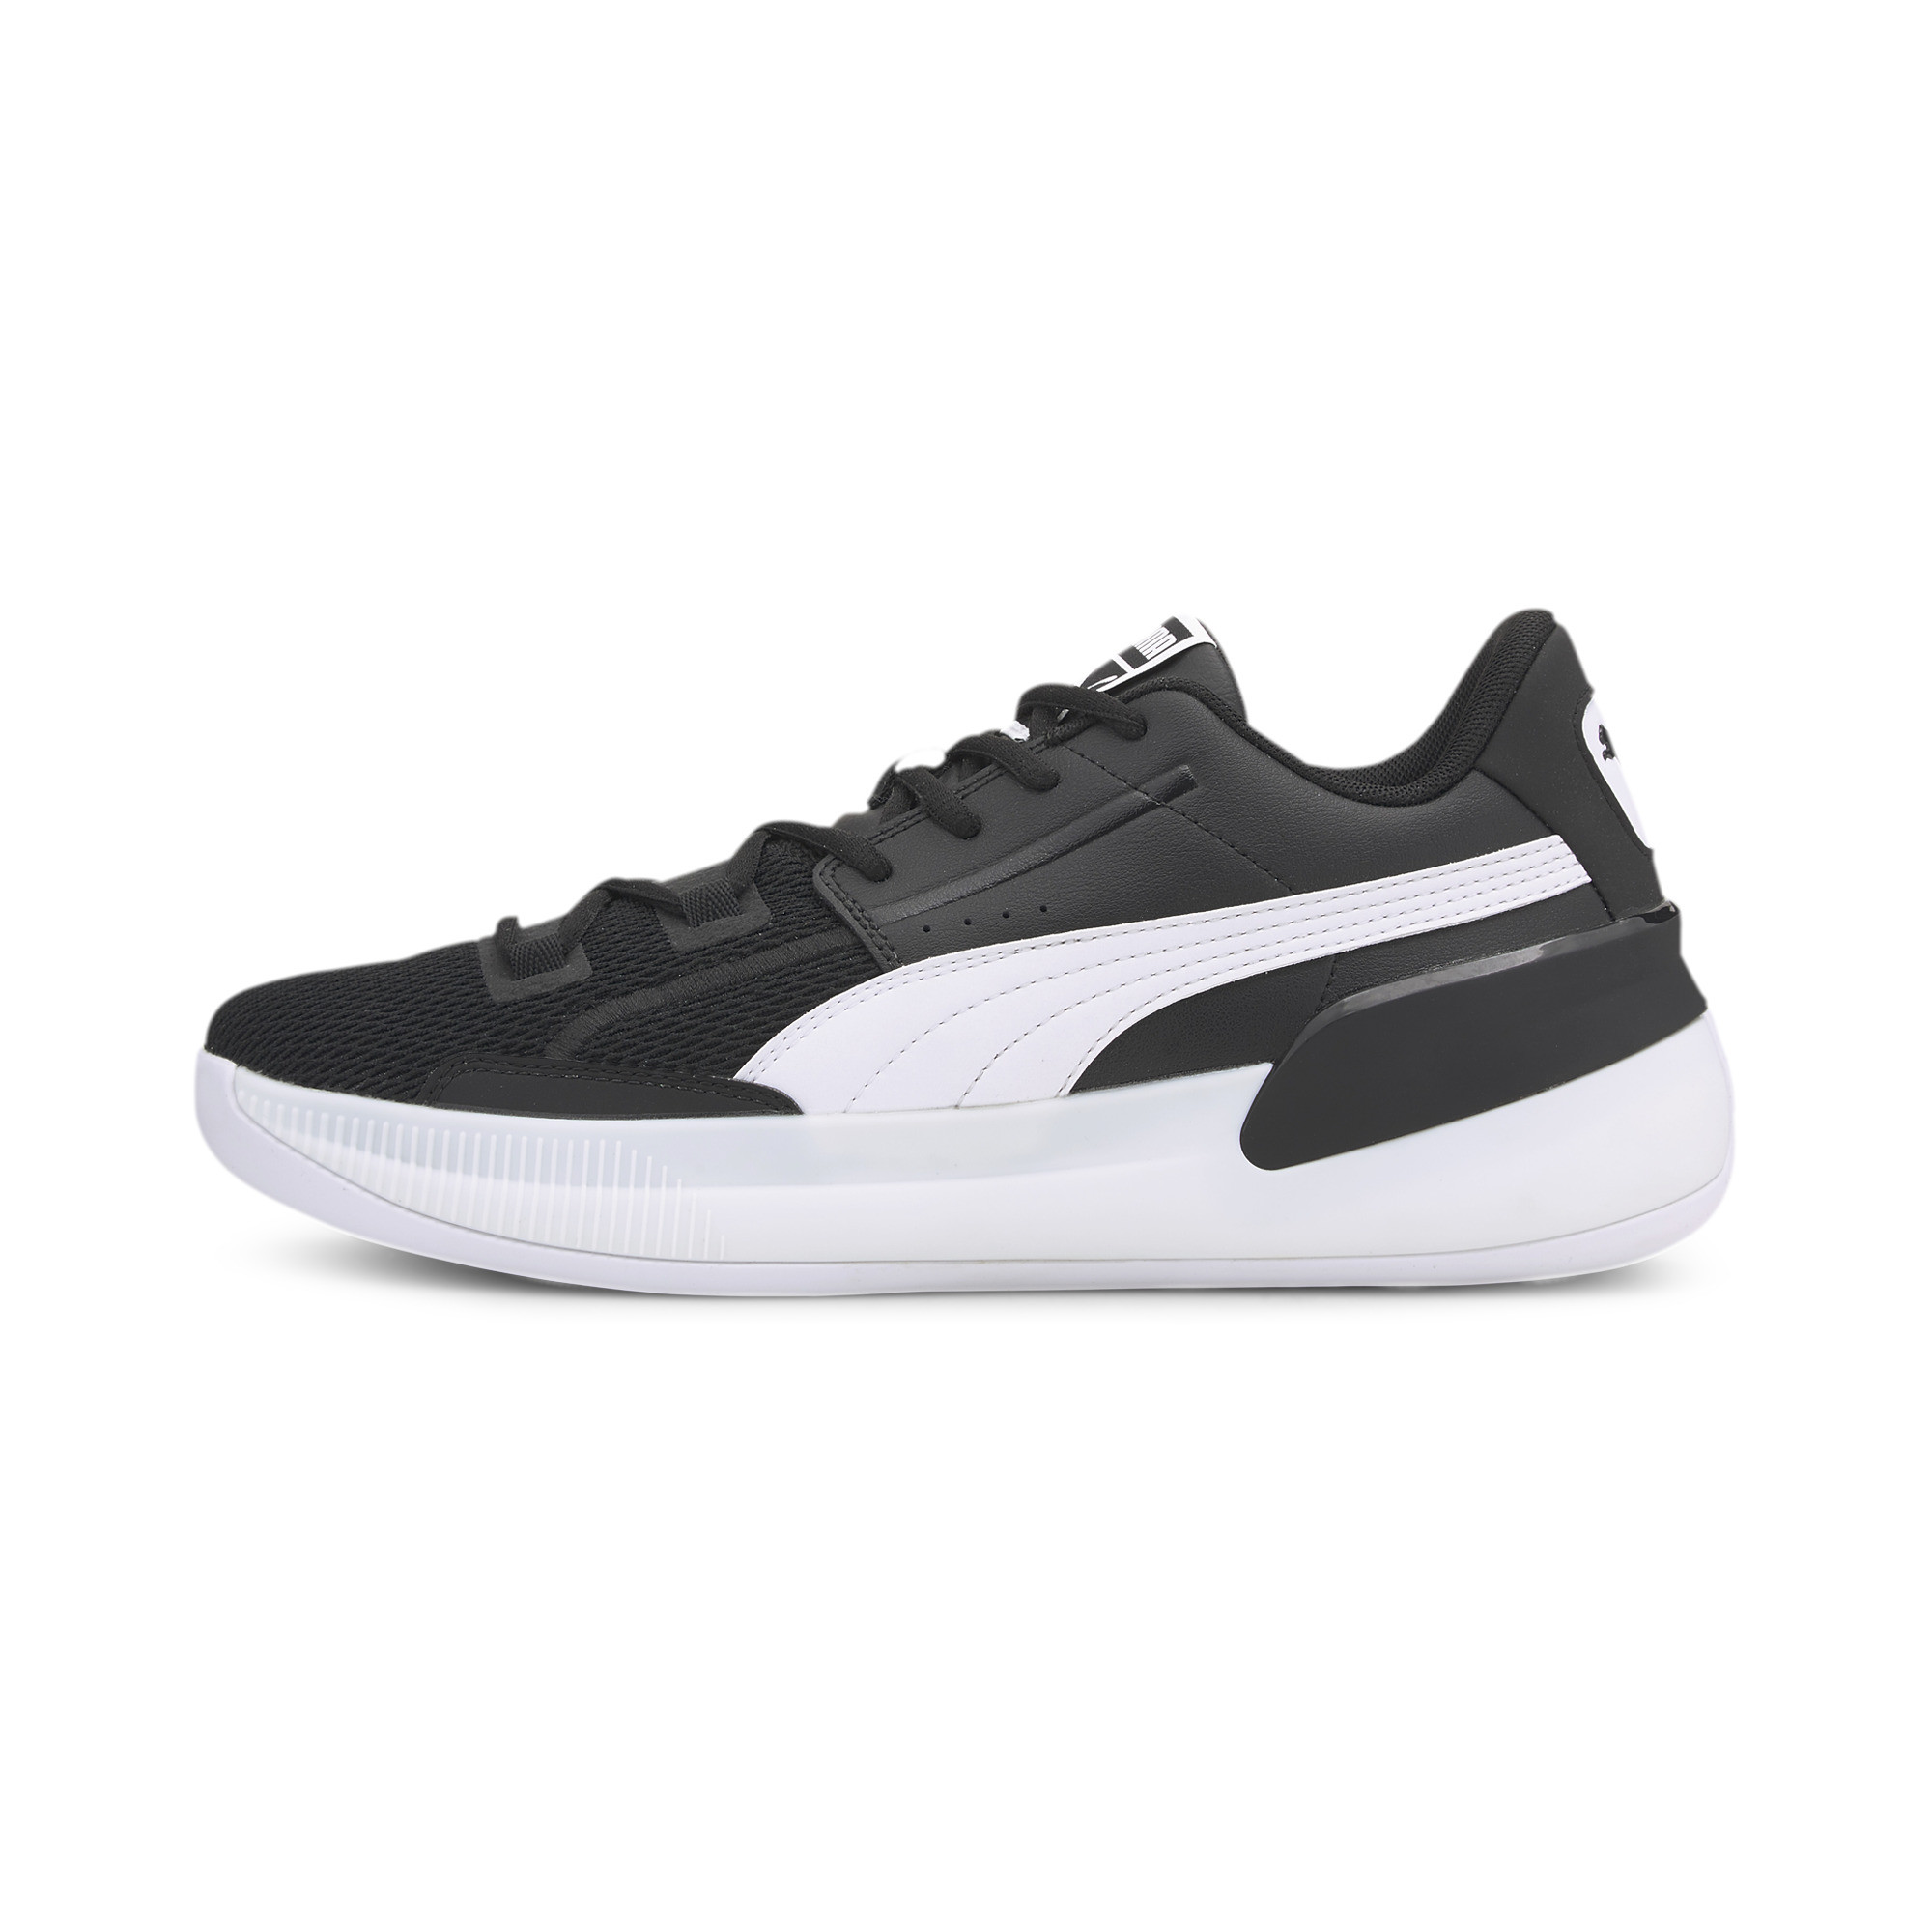 puma bball shoes